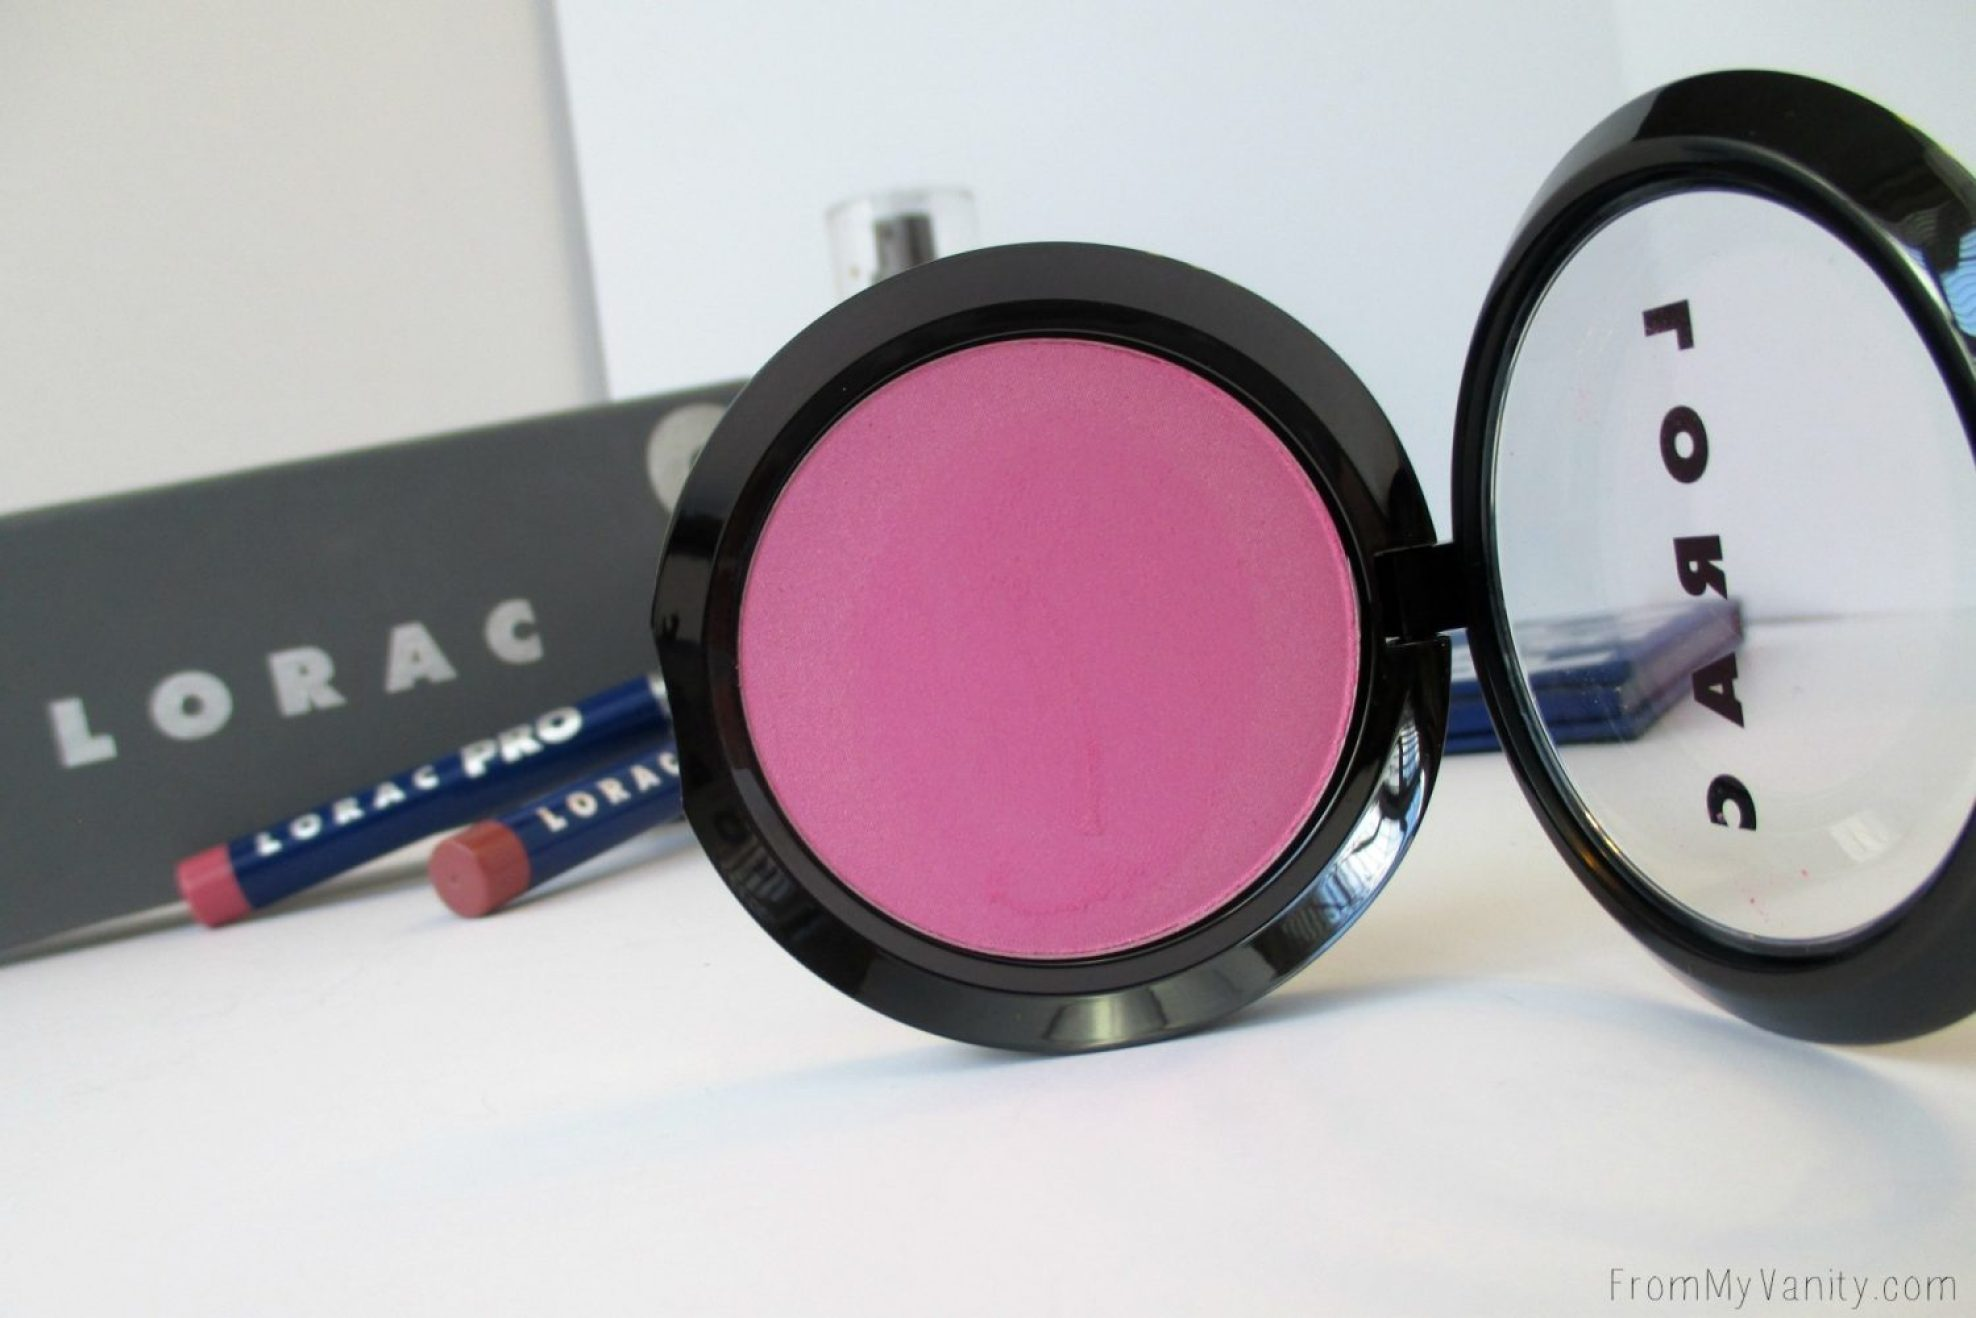 Lorac Color Source Buildable Blushes // Satin Vivid // FromMyVanity.com @LadyKaty92